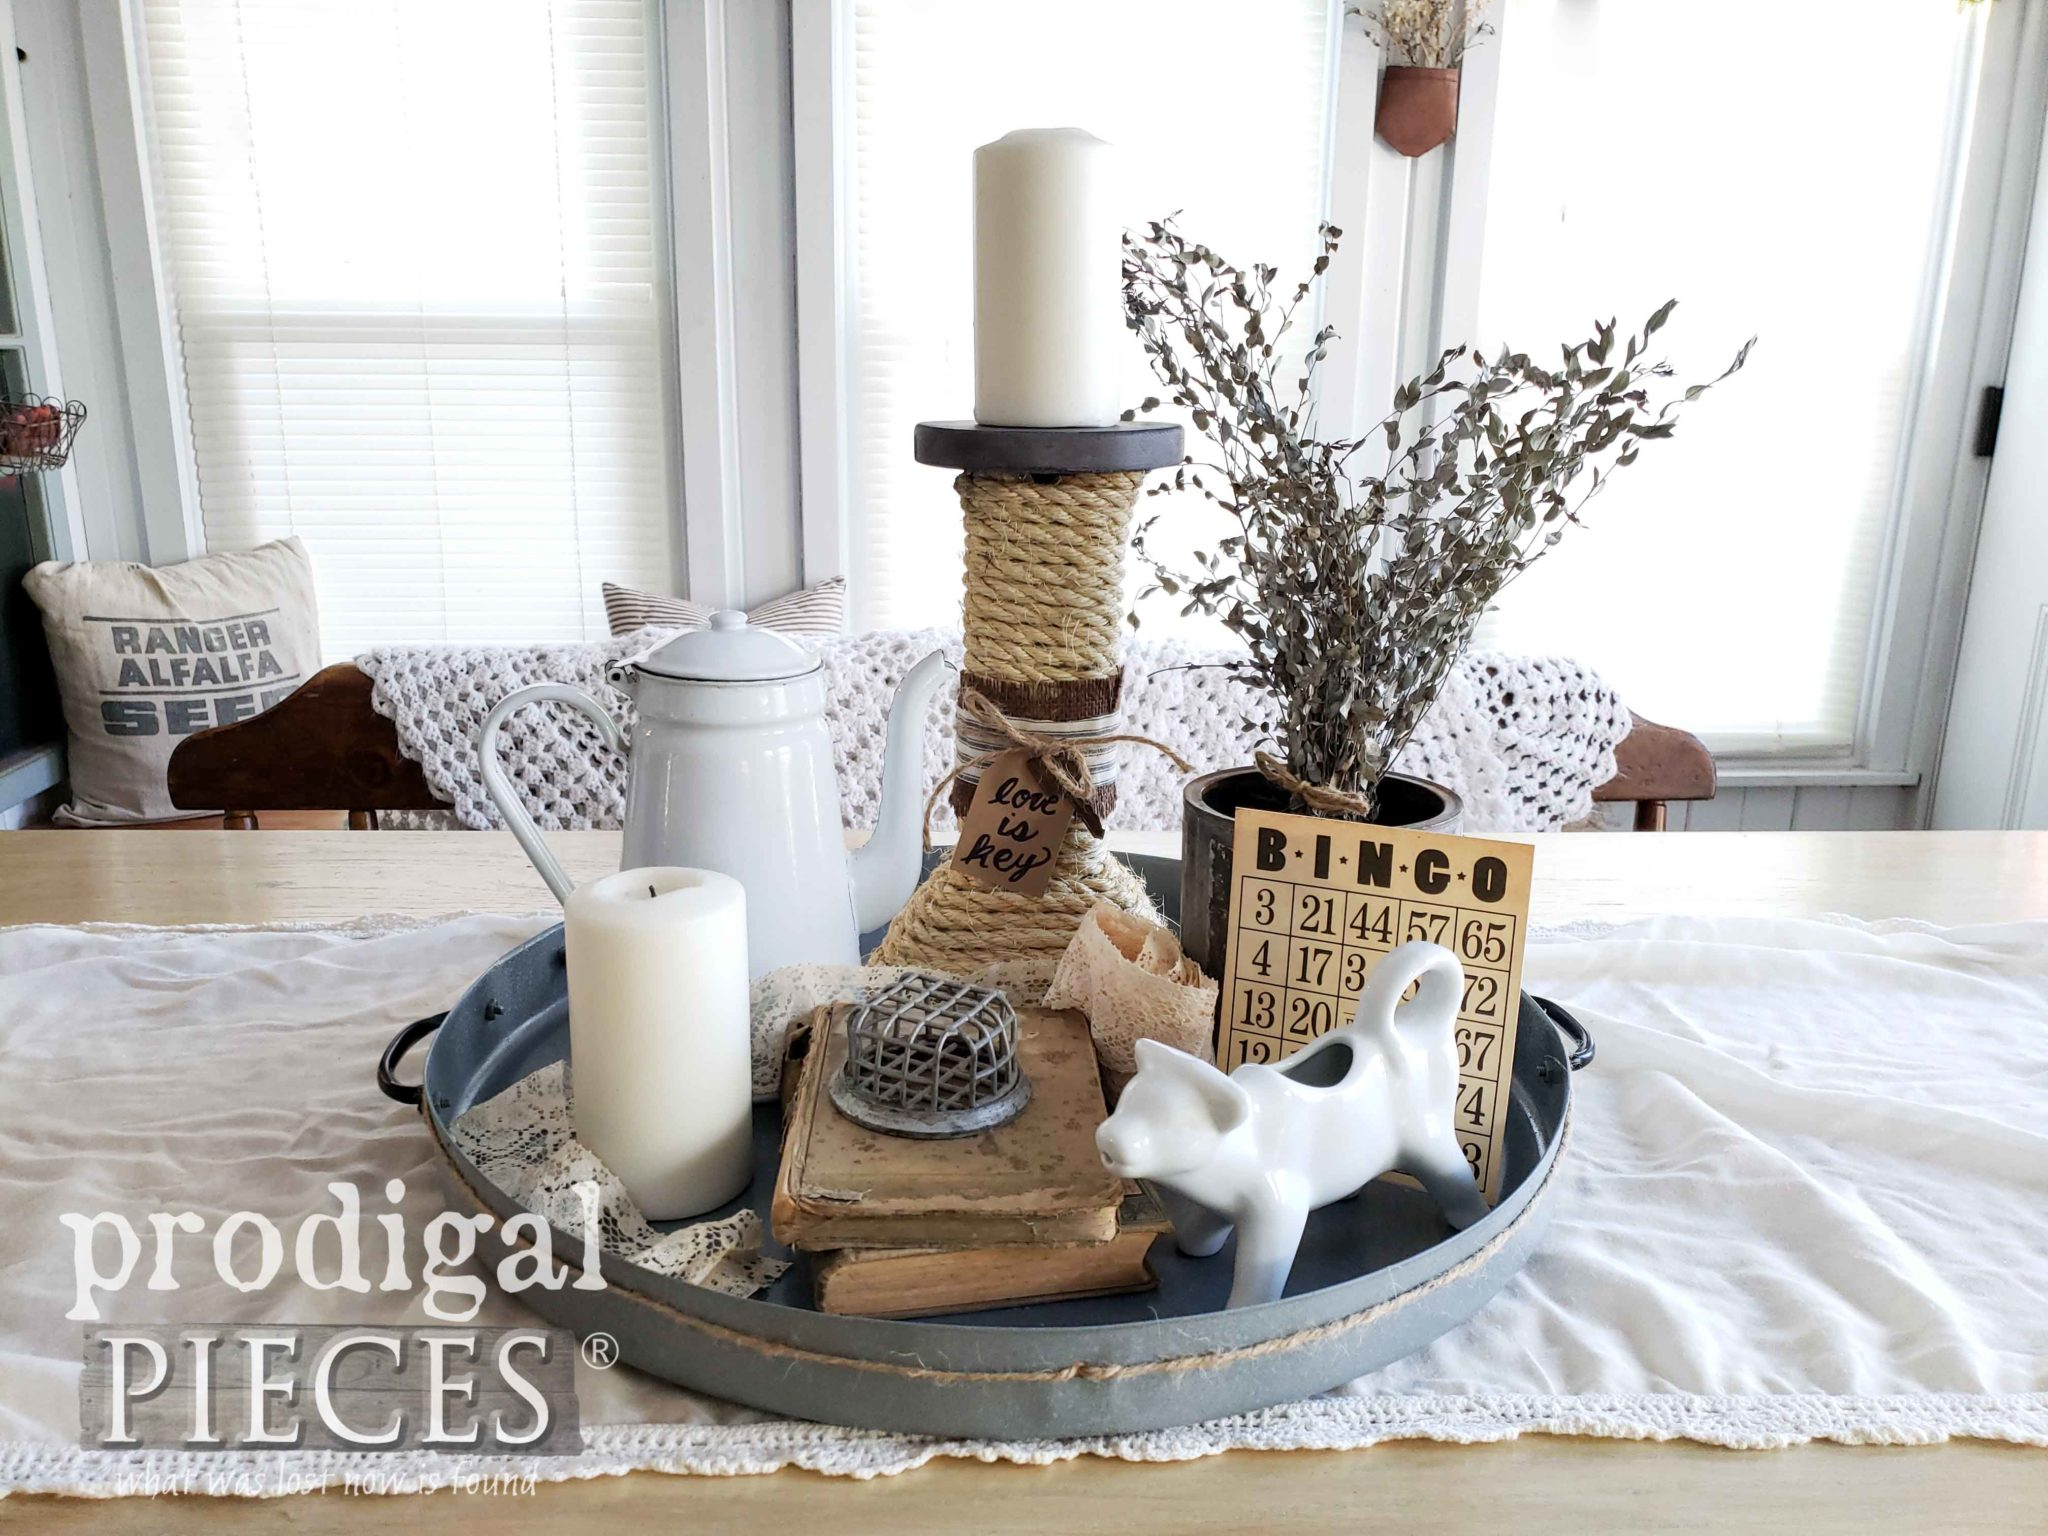 DIY Upcycled Farmhouse Tray with Vintage Style Vignette by Larissa of Prodigal Pieces | prodigalpieces.com